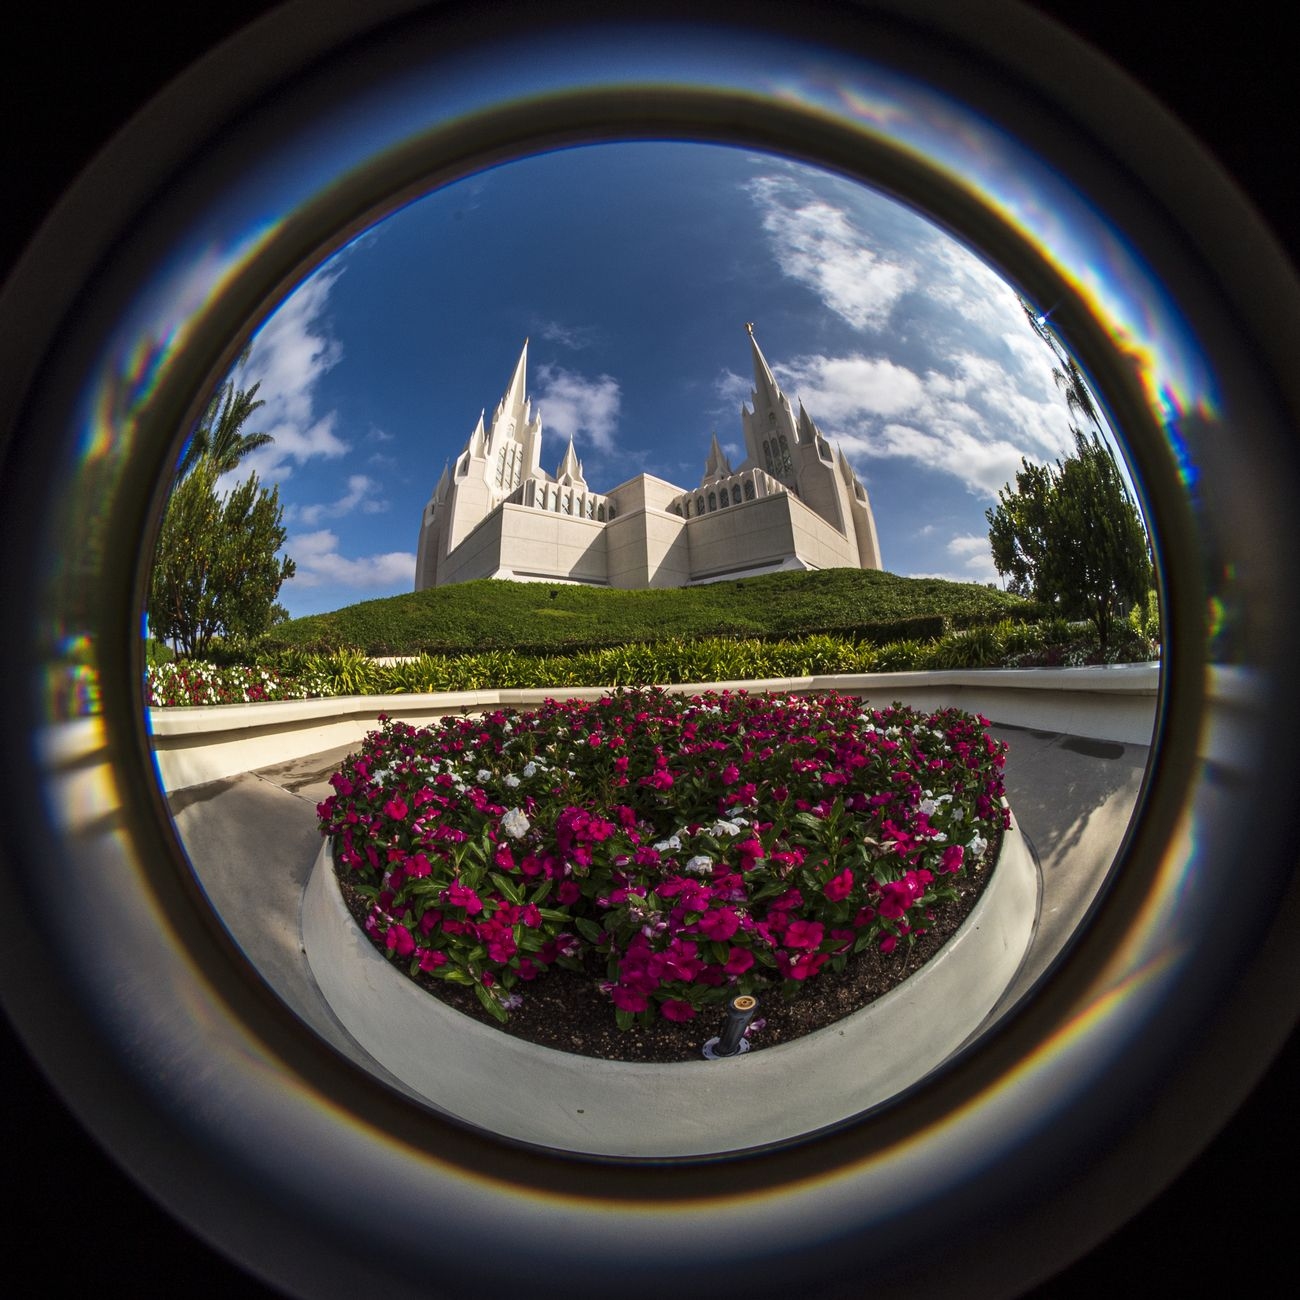 Fisheye view of San Diego Temple with flowers in foreground. Temple belongs to The Church of Jesus Christ of Latter Day Saints.